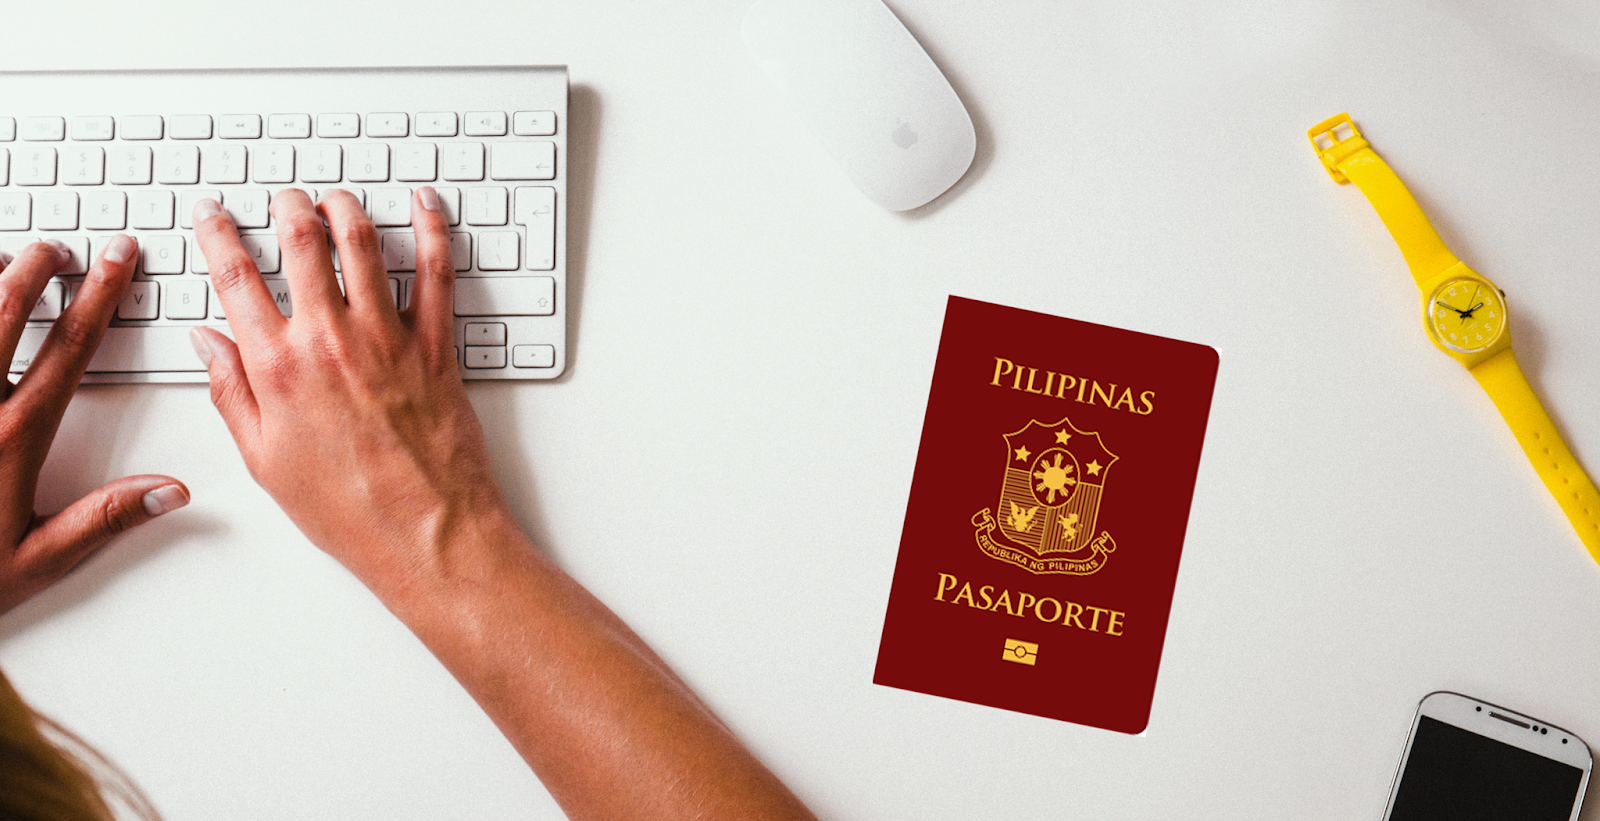 HOW TO GET DFA PASSPORT RENEWAL SCHEDULE ONLINE EXOTIC PHILIPPINES TRAVEL BLOG g dumaguing cebu travel vlogger video  mutilated passport Philippines